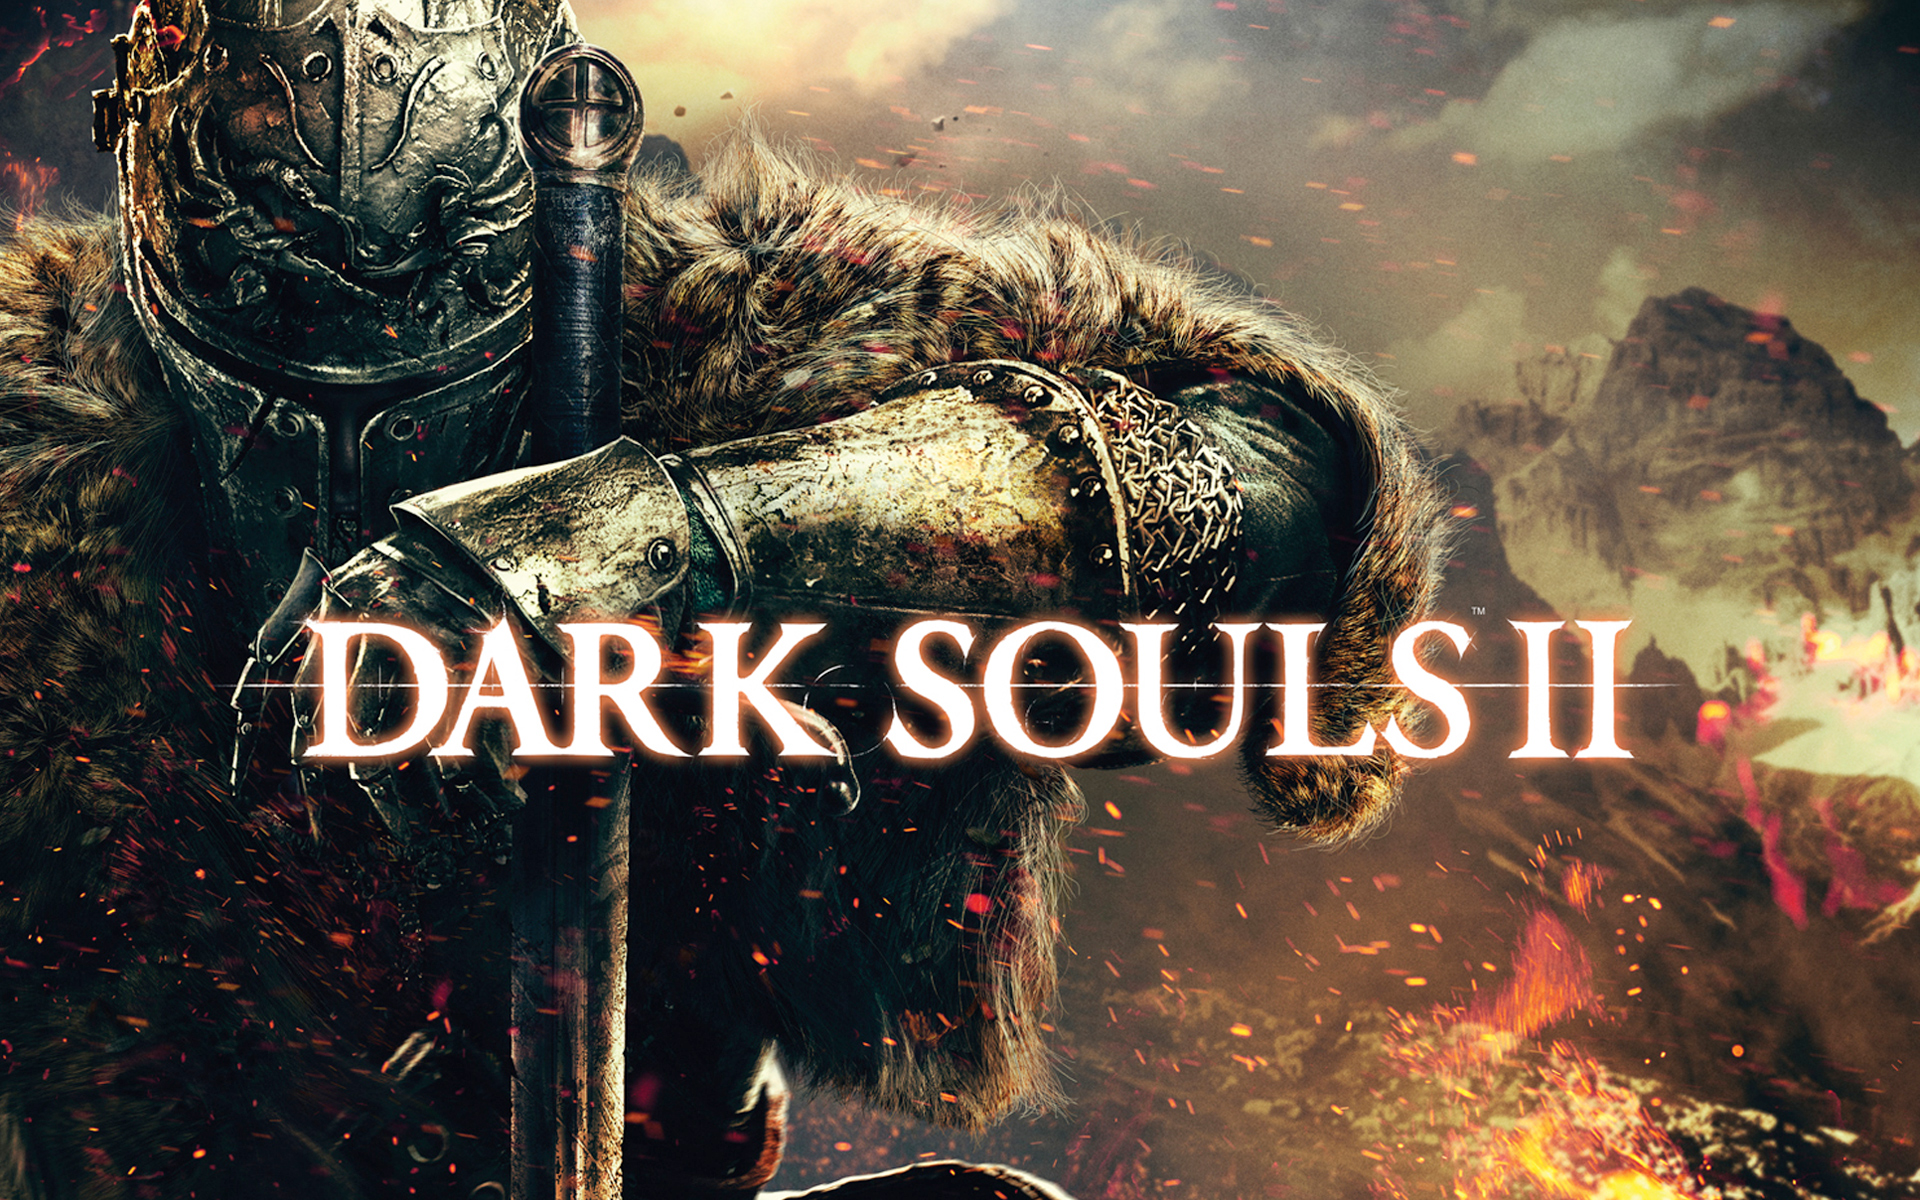 Free download dark souls 2 II game knight hd wallpaper image picture photo  [1920x1200] for your Desktop, Mobile & Tablet | Explore 49+ Dark Souls 2  Wallpaper | Dark Phone Wallpaper, Dark Souls 3 Wallpaper,